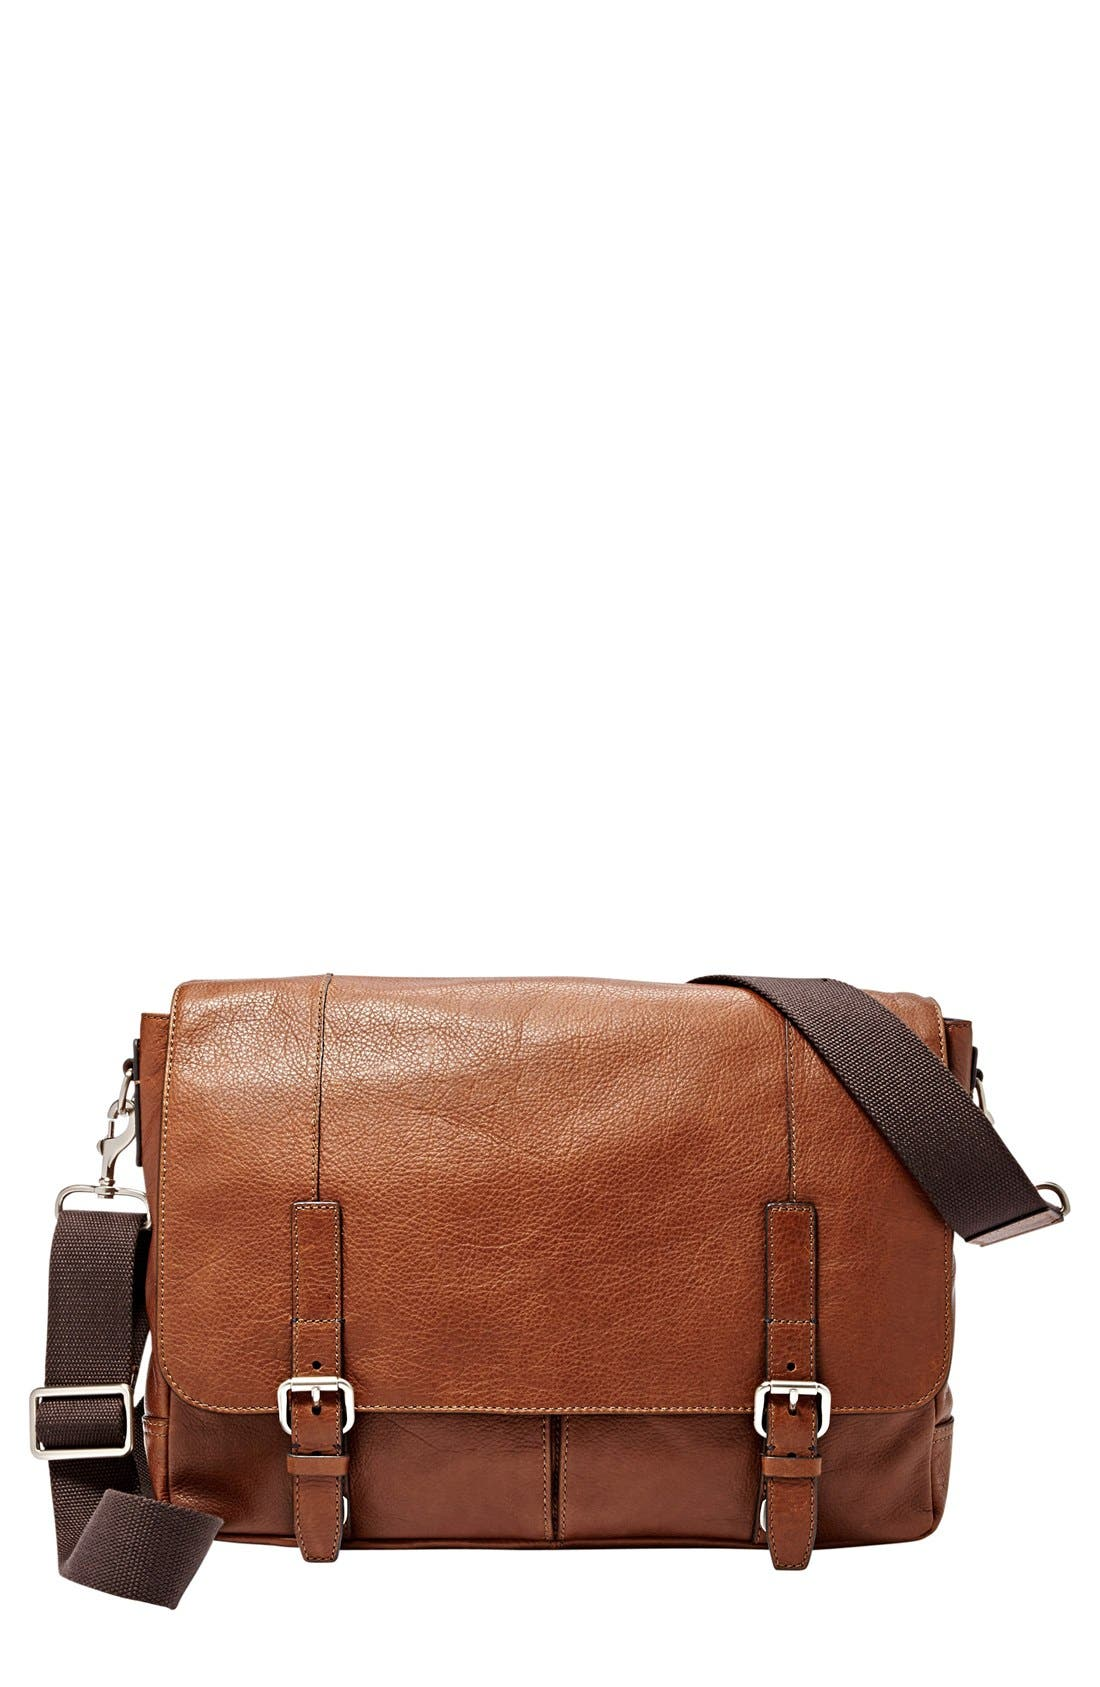 Fossil 'Graham' Leather Messenger Bag